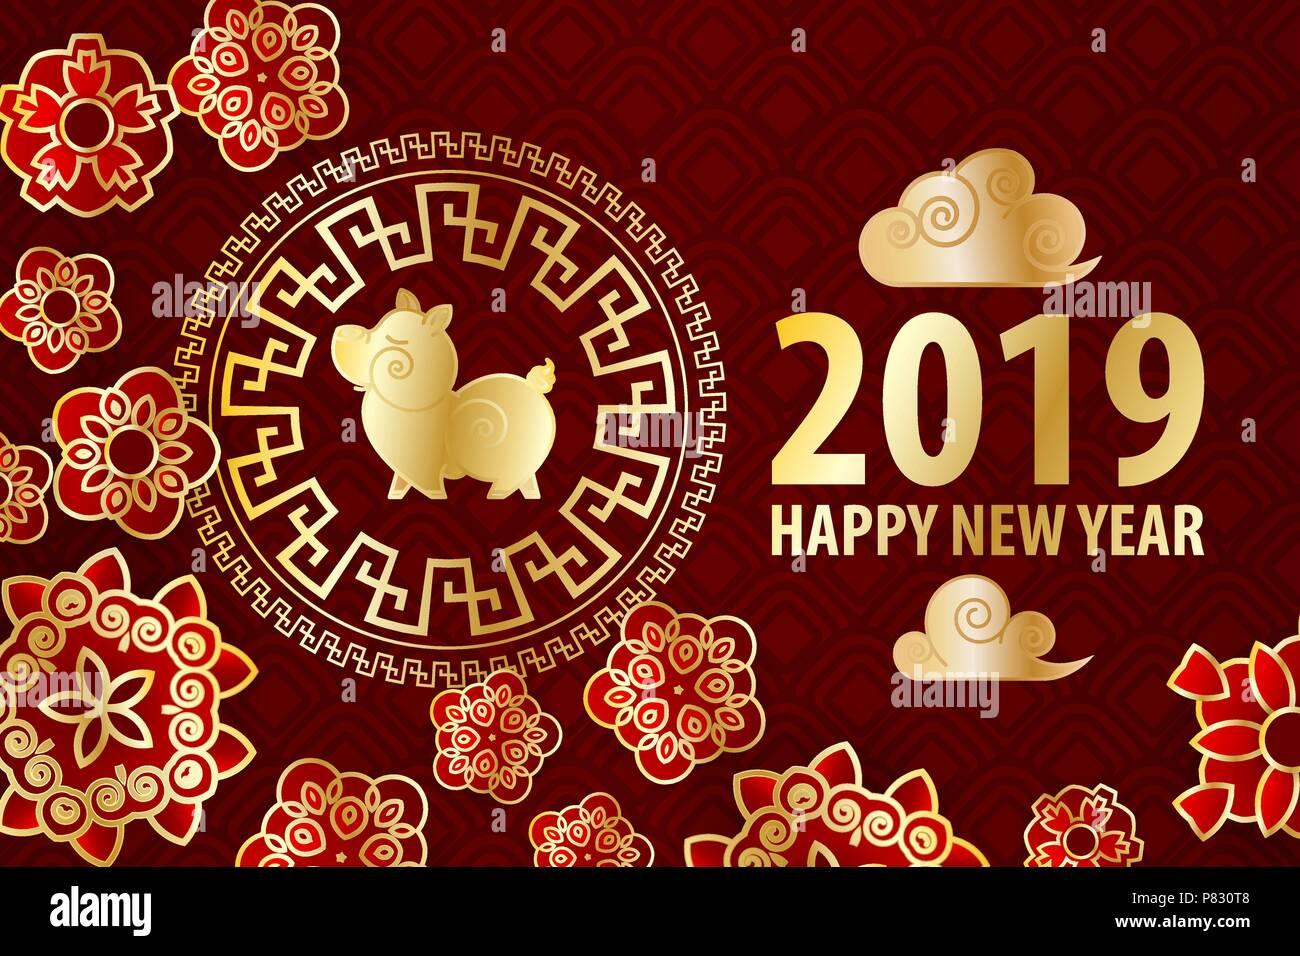 2019 Chinese New Year Yellow Pig Golden Asian Frame Red Holiday